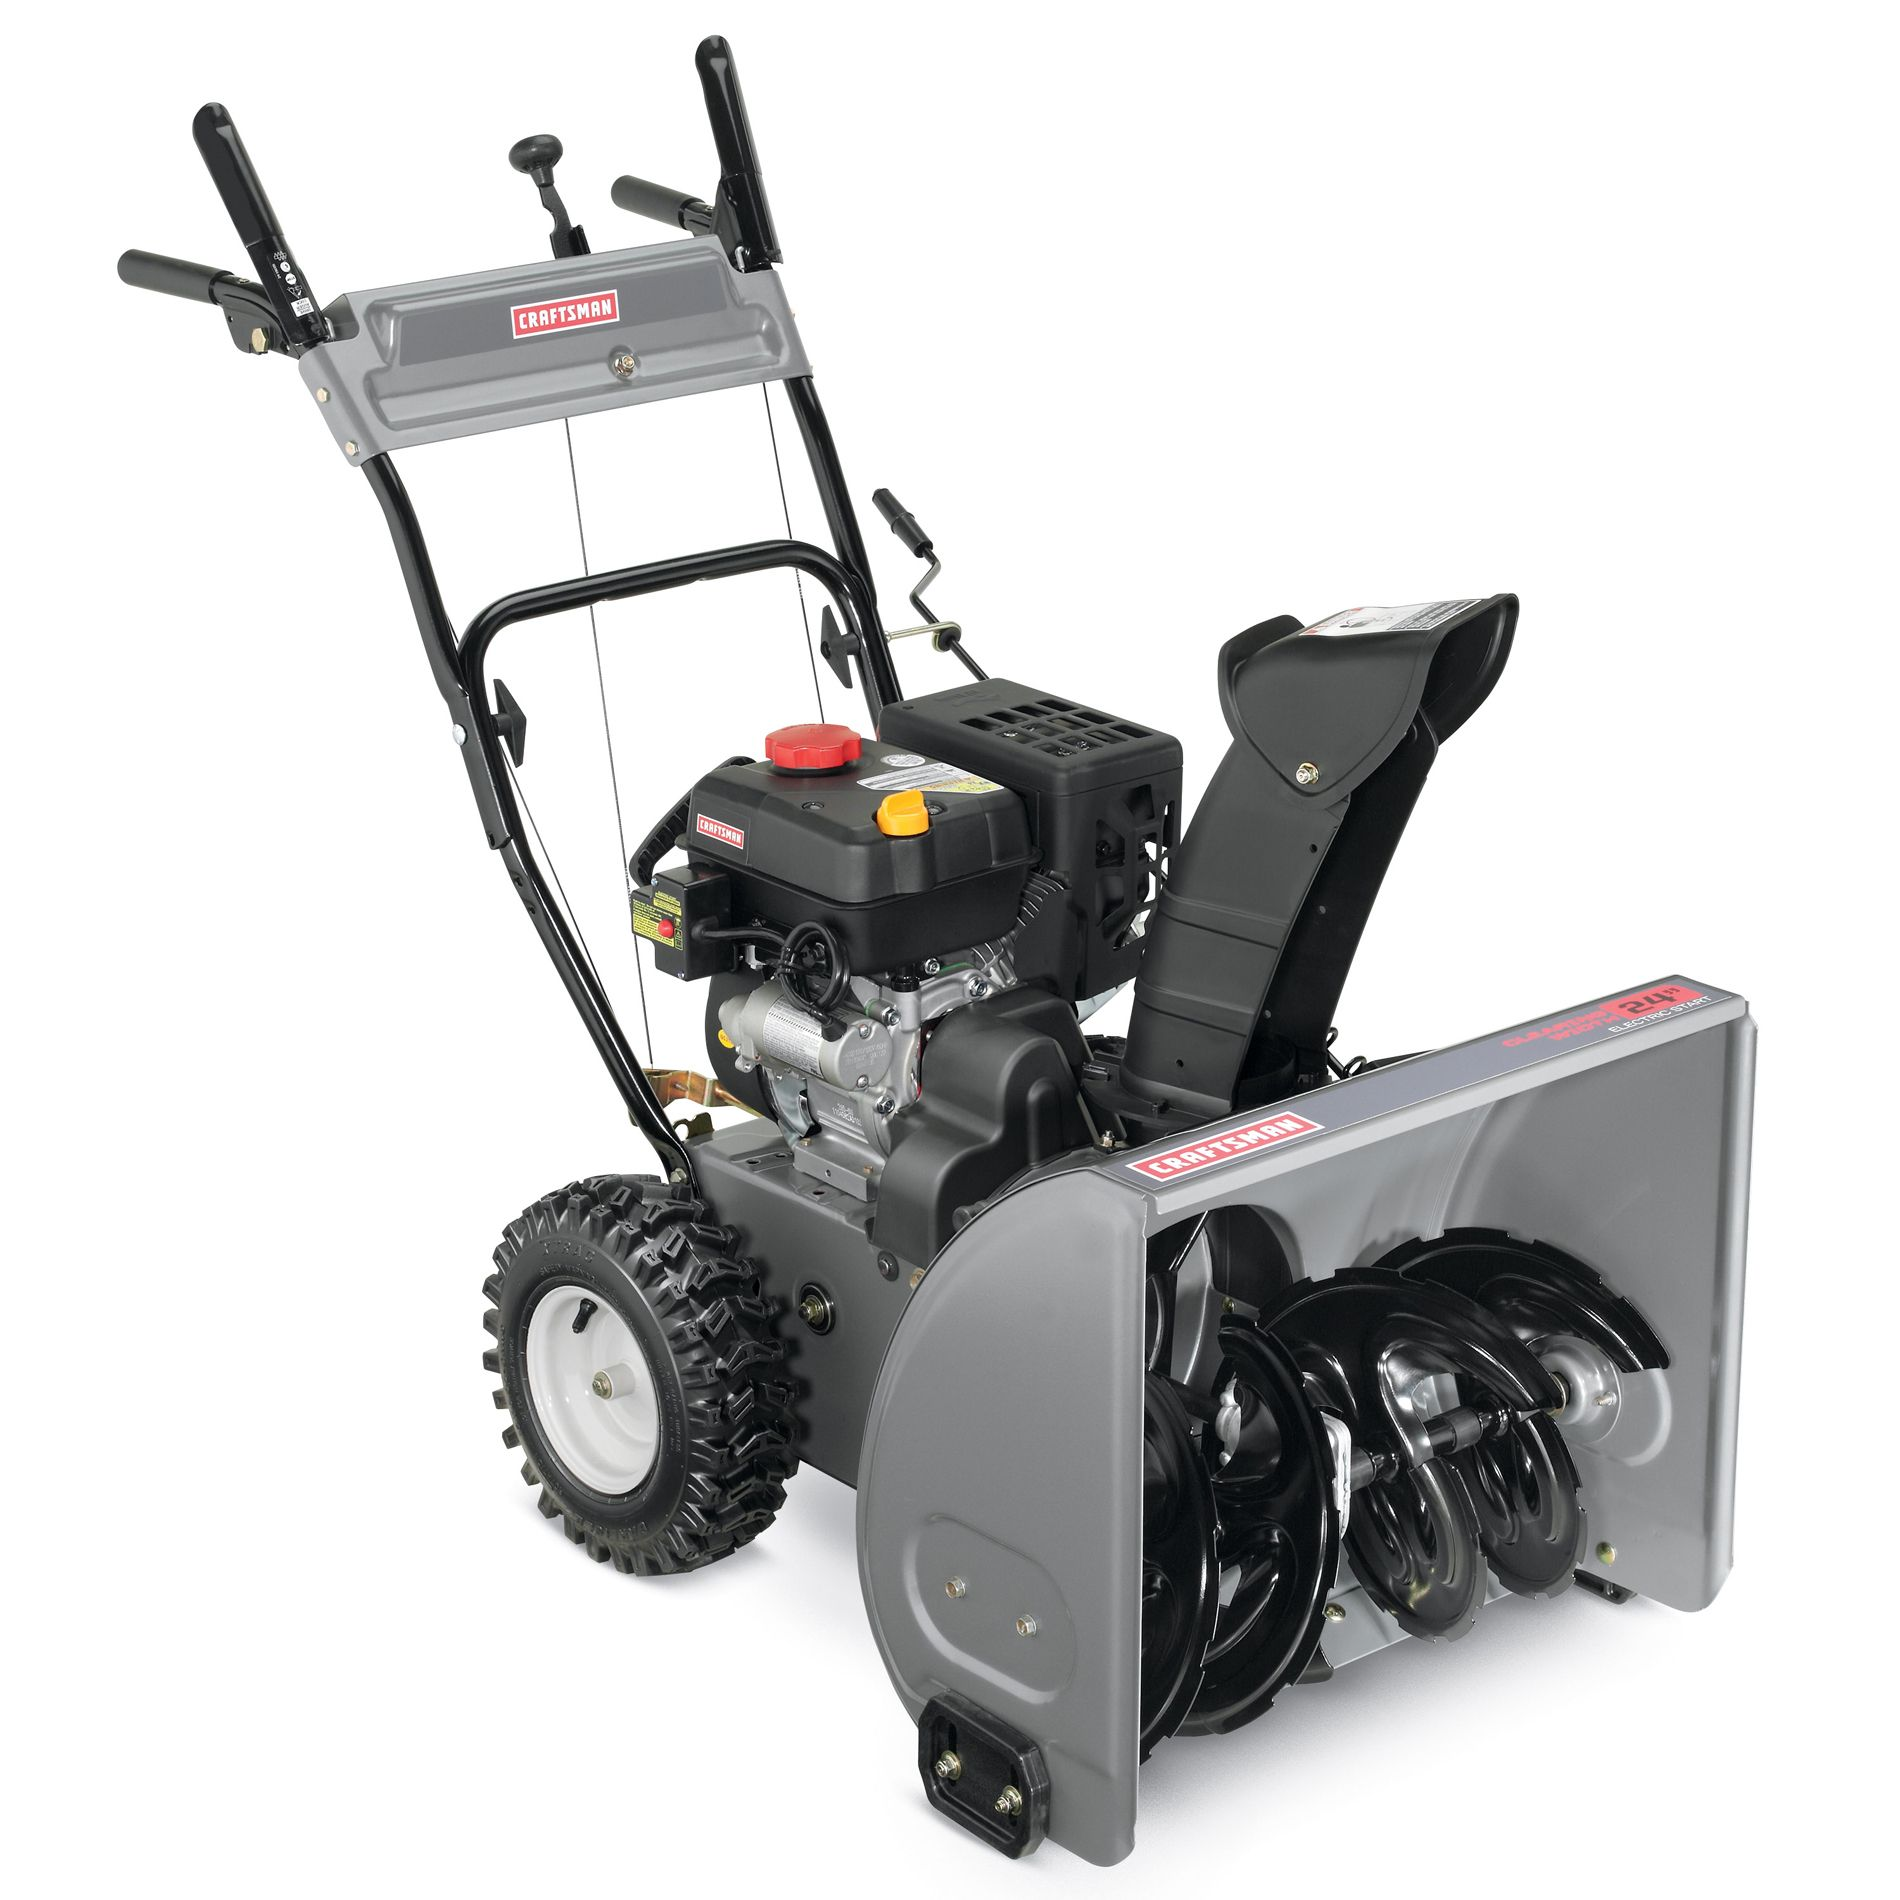 The Best Craftsman Snow Blowers For 2015